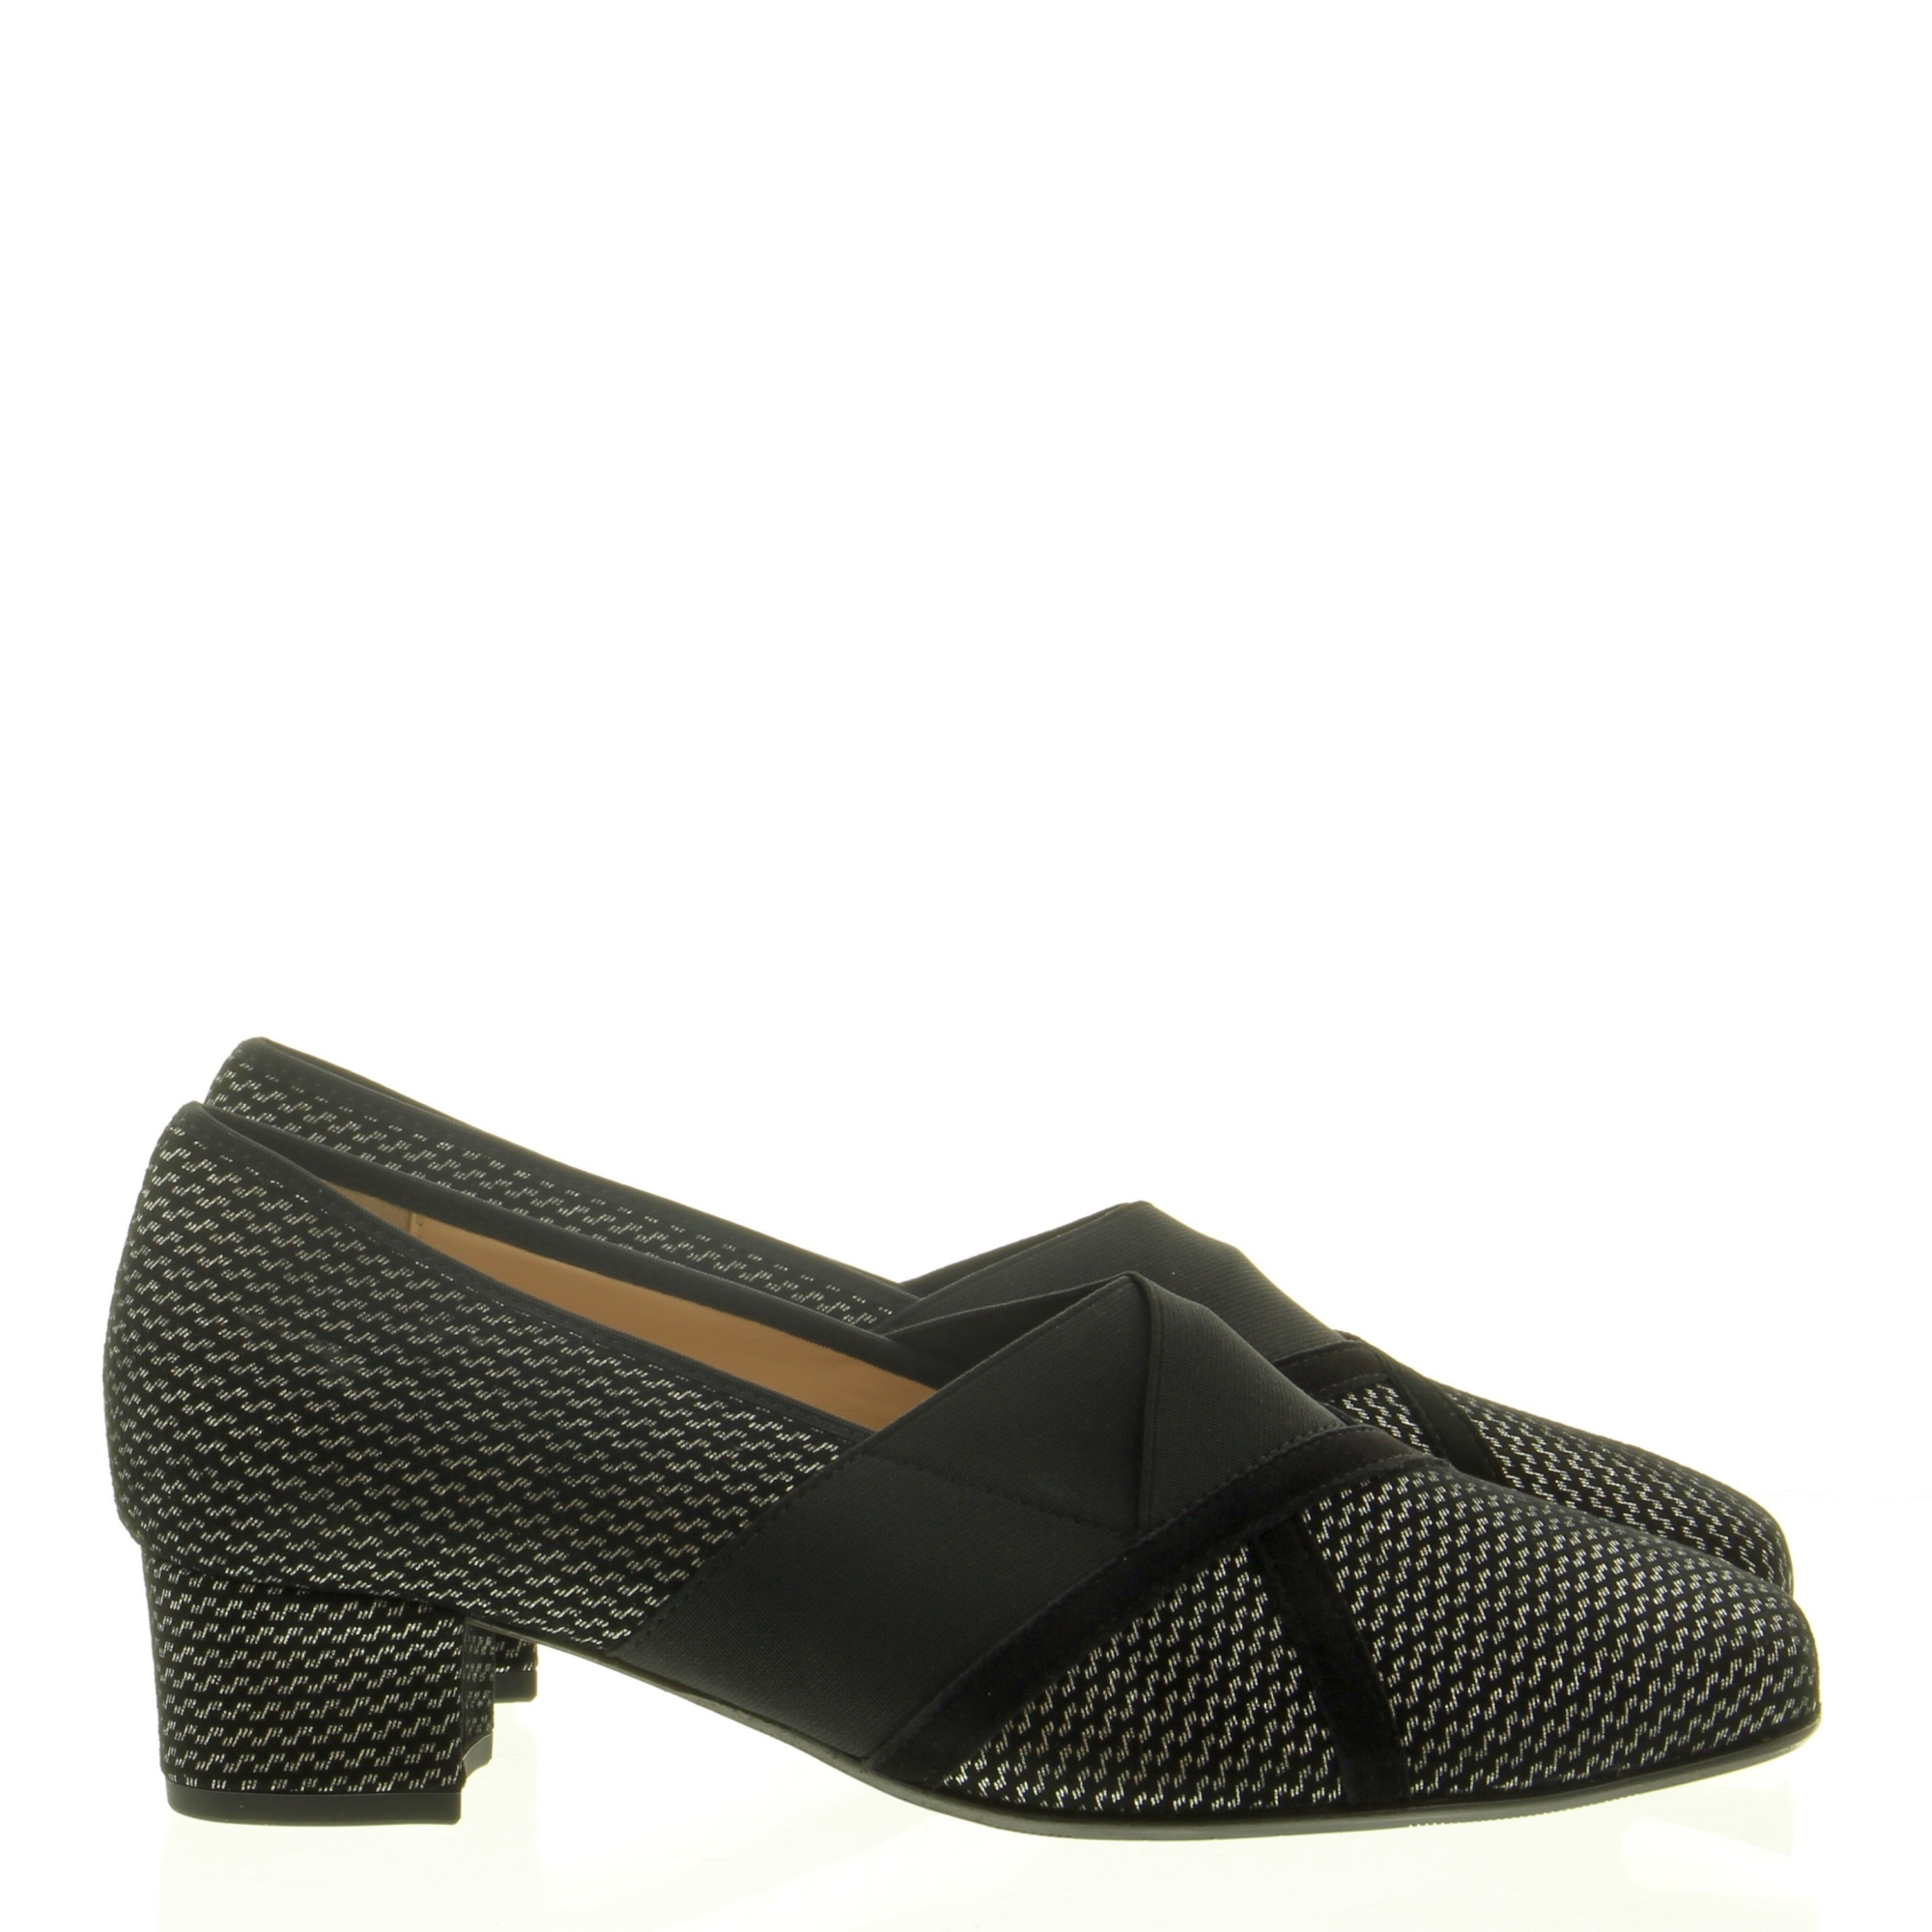 Hassia Shoes 303338 Evelyn 7601 Silver schwarz